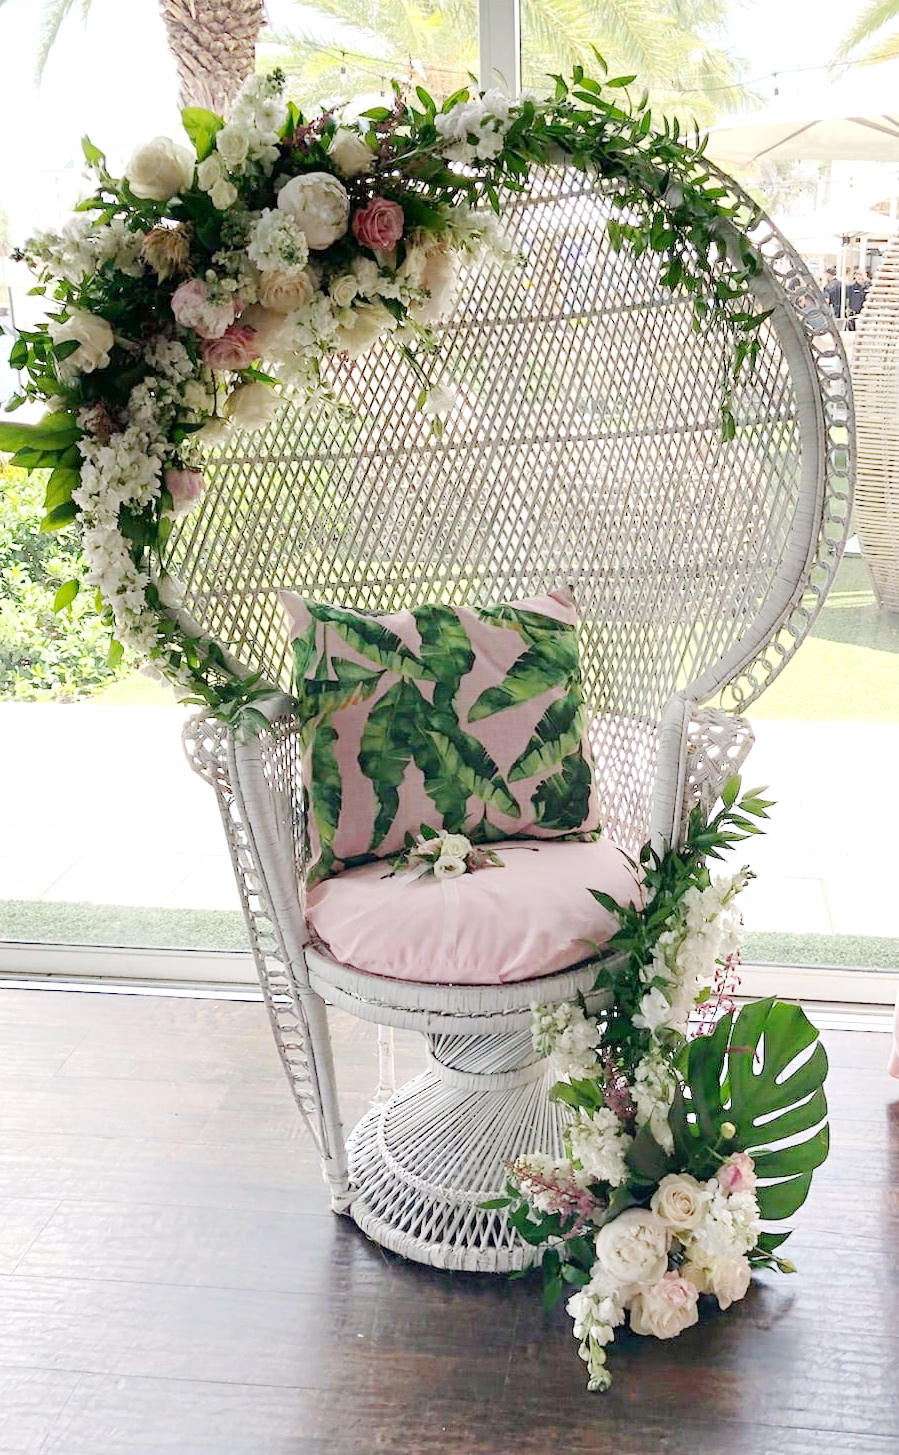 Wicker Chair Decorated With Fresh Flowers